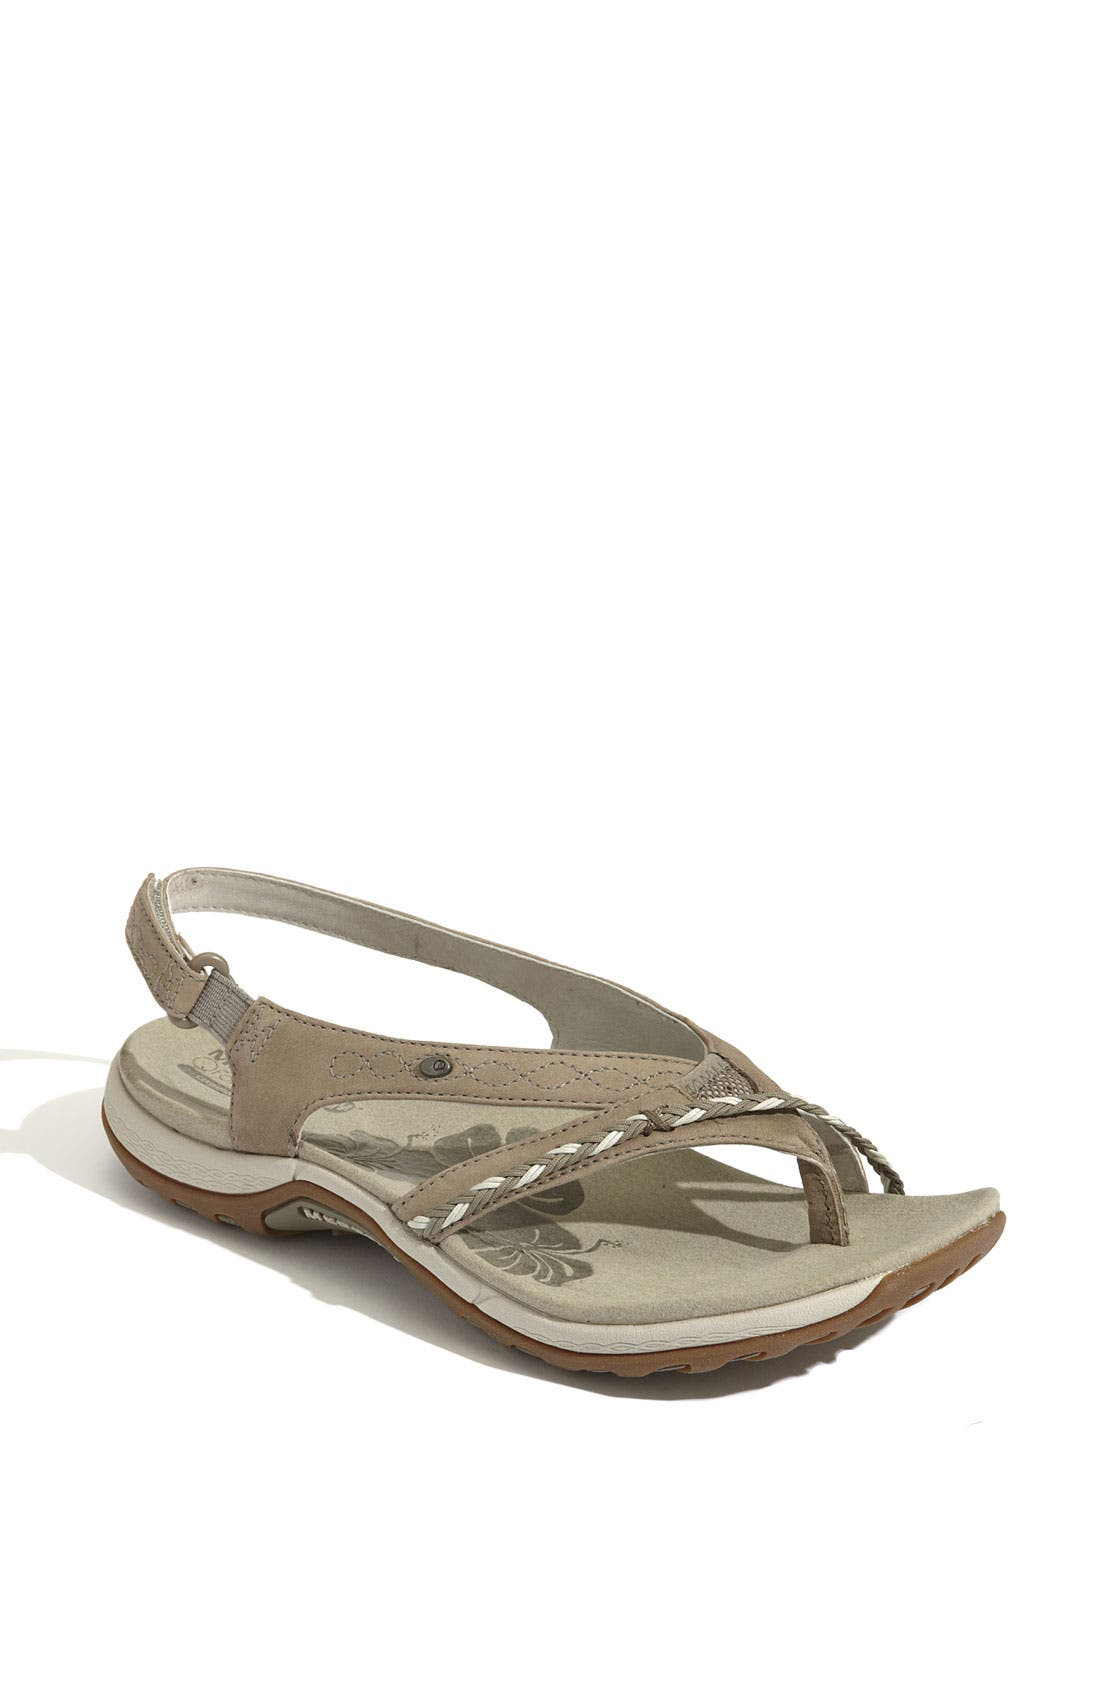 Alternate Image 1 Selected - Merrell 'Stellabloom' Sandal